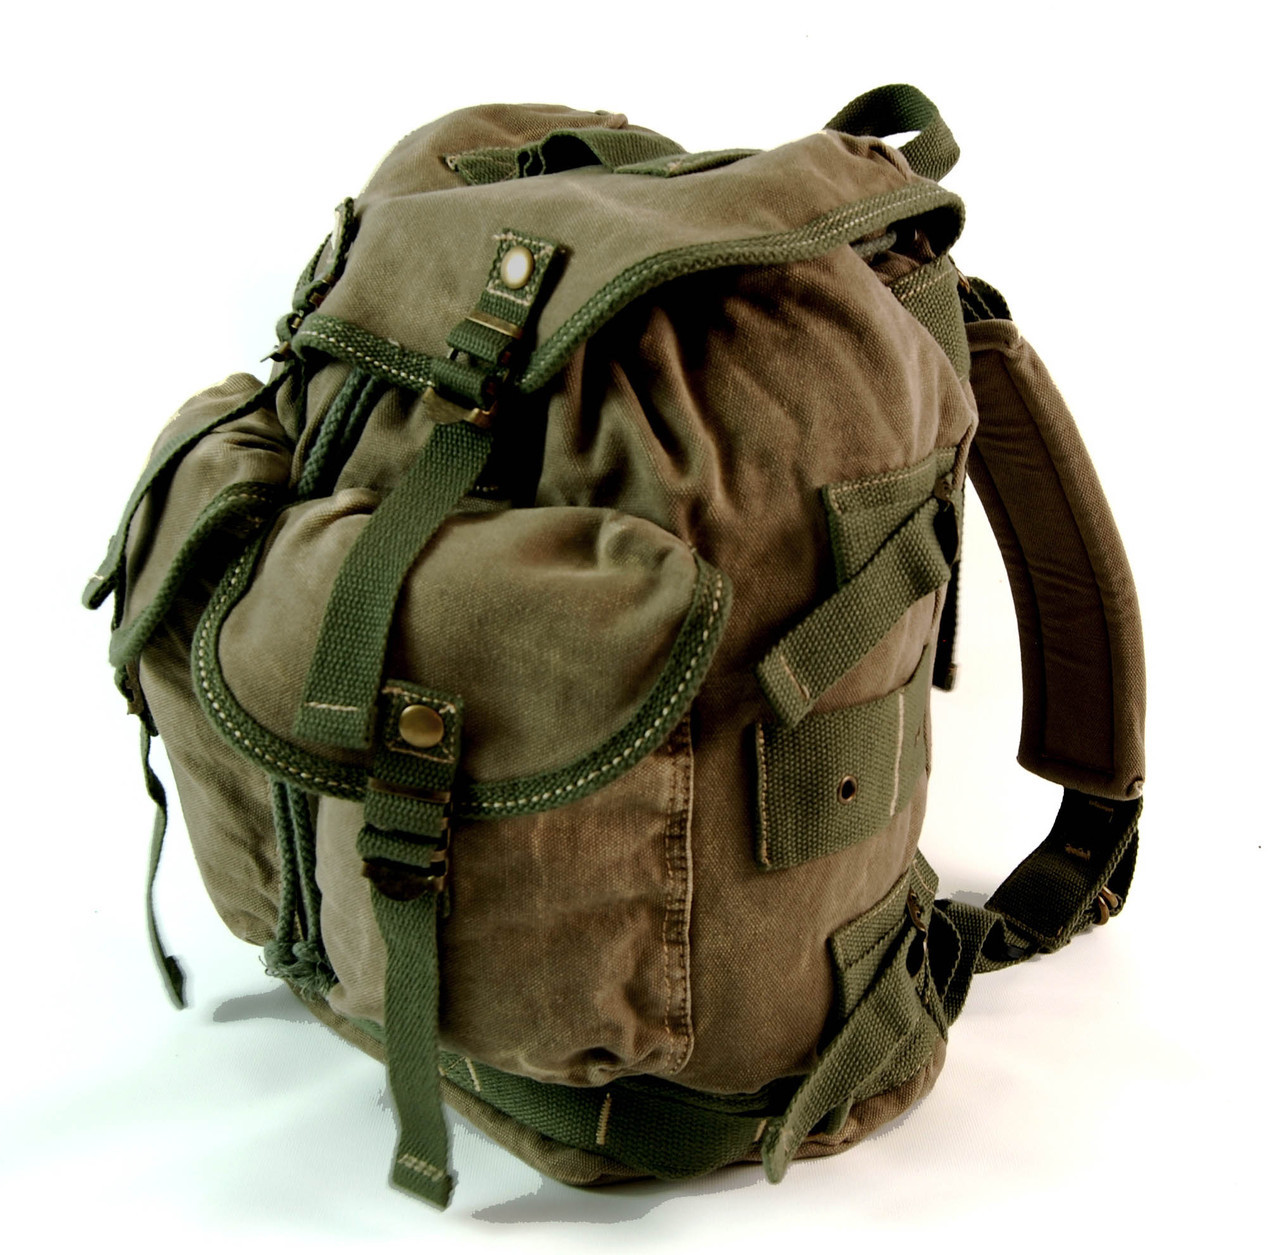 e688da0d55 Men s Trendy Military Style Canvas Backpack - Army Green ...